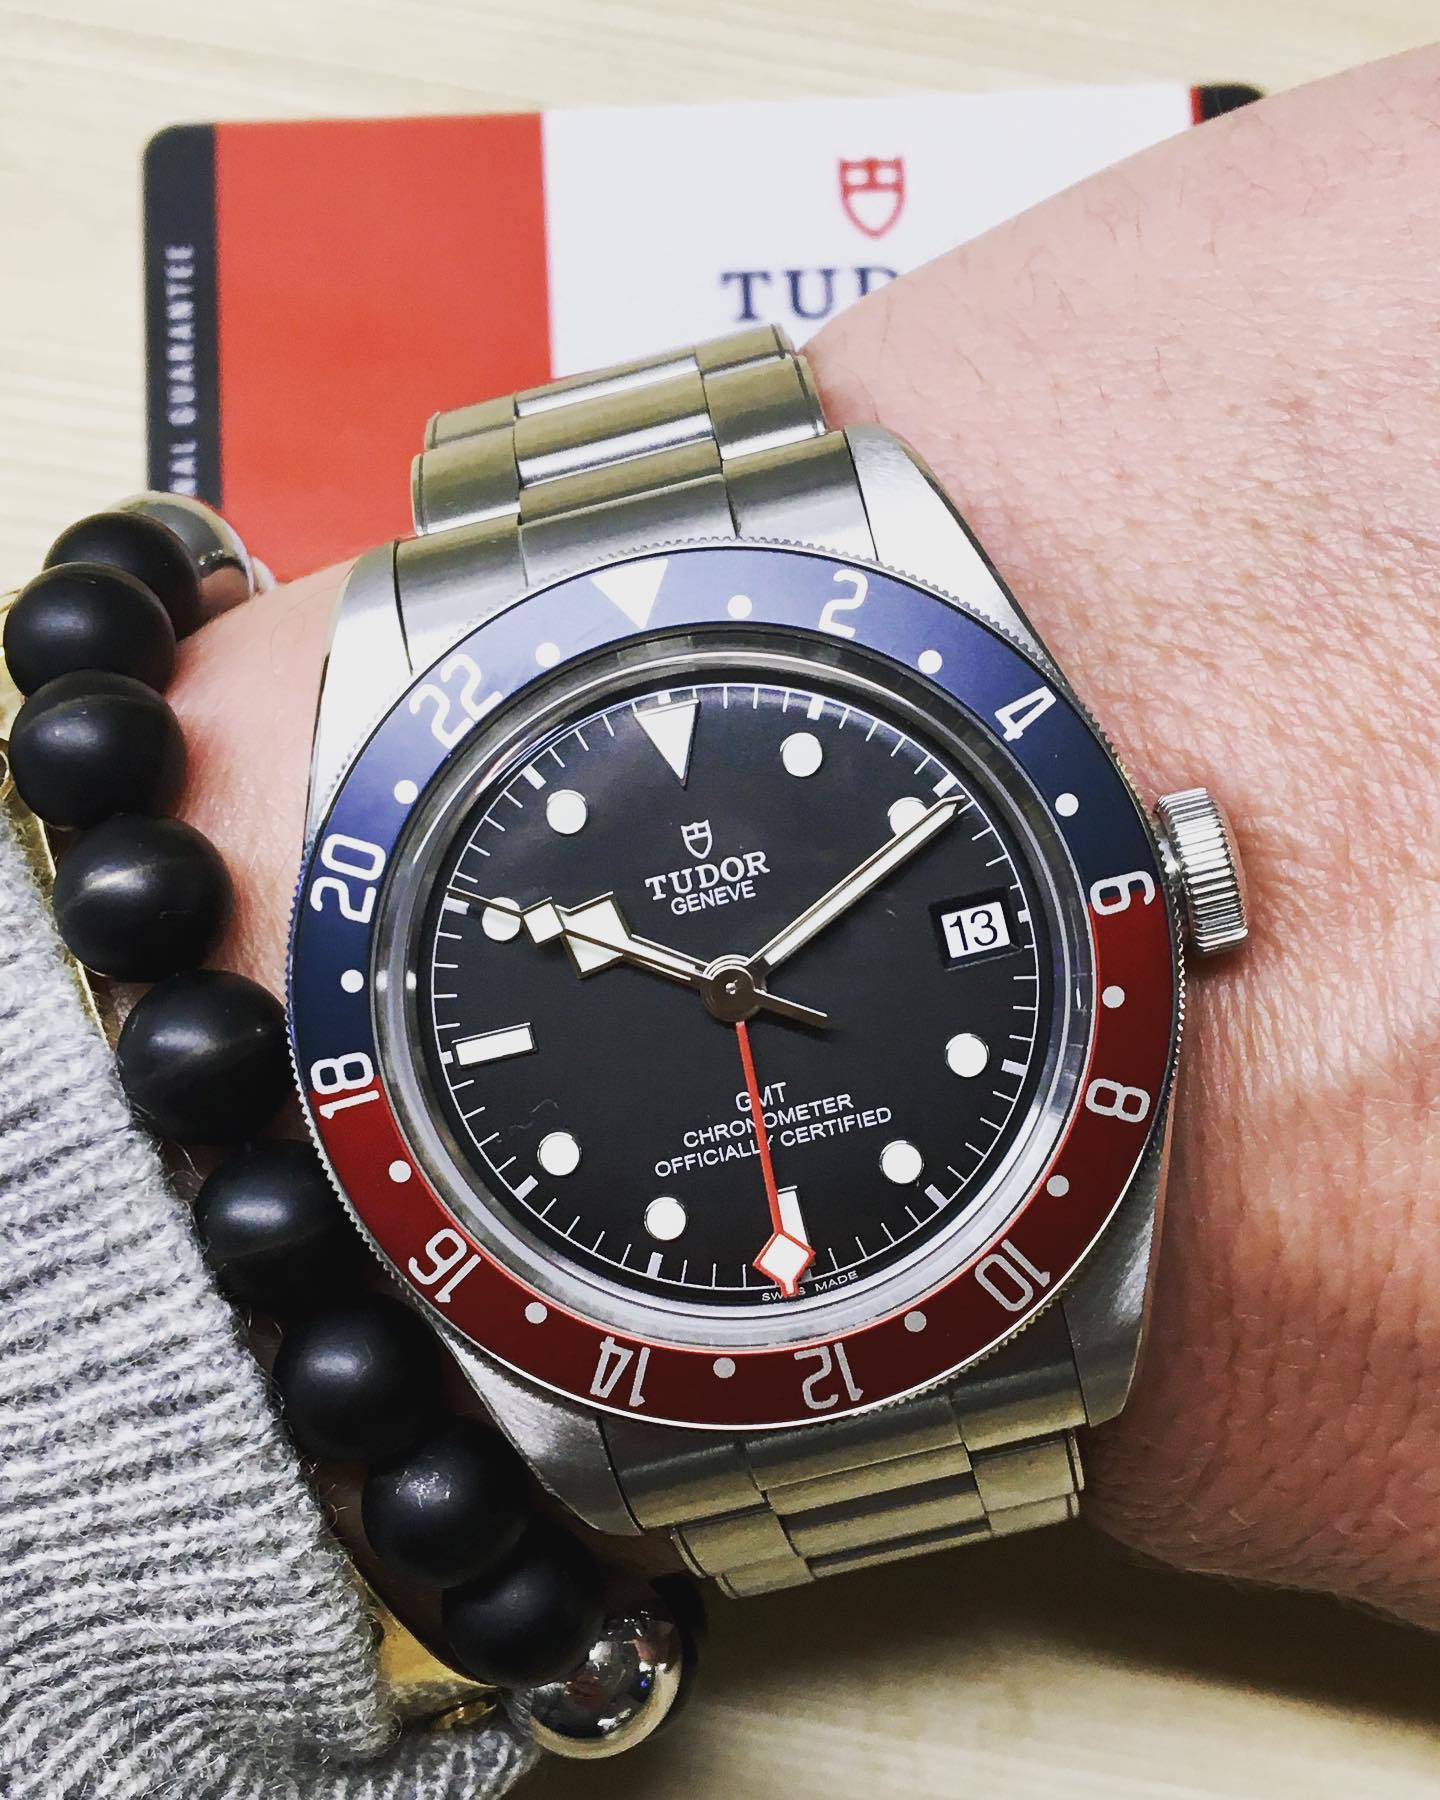 2020 Black Bay GMT